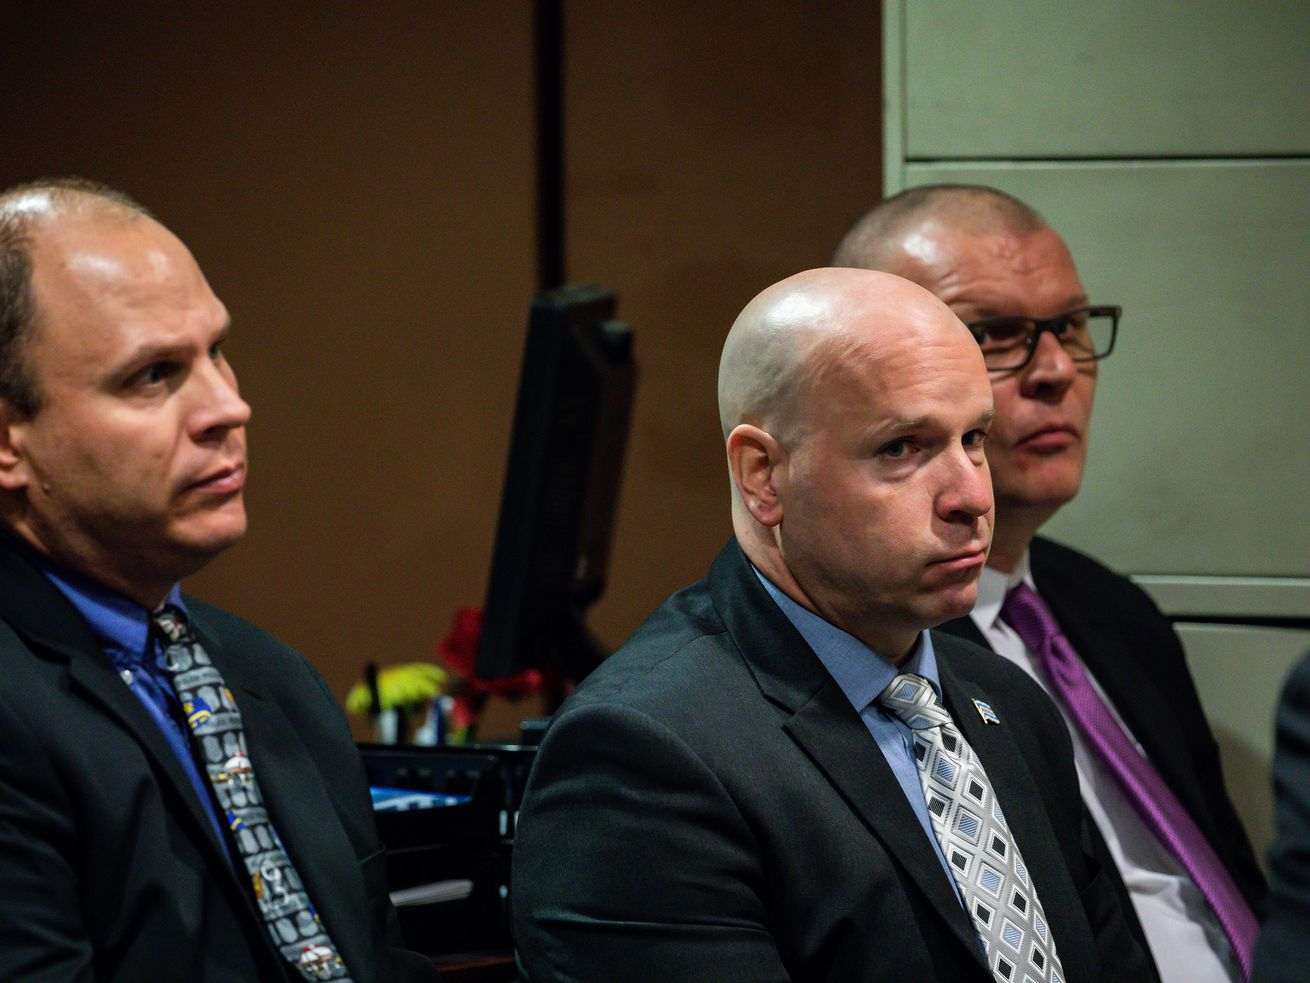 Chicago Police Officer Thomas Gaffney, ex-Officer Joseph Walsh and former Detective David March, were accused of conspiring to cover up the 2014 shooting of Laquan McDonald.